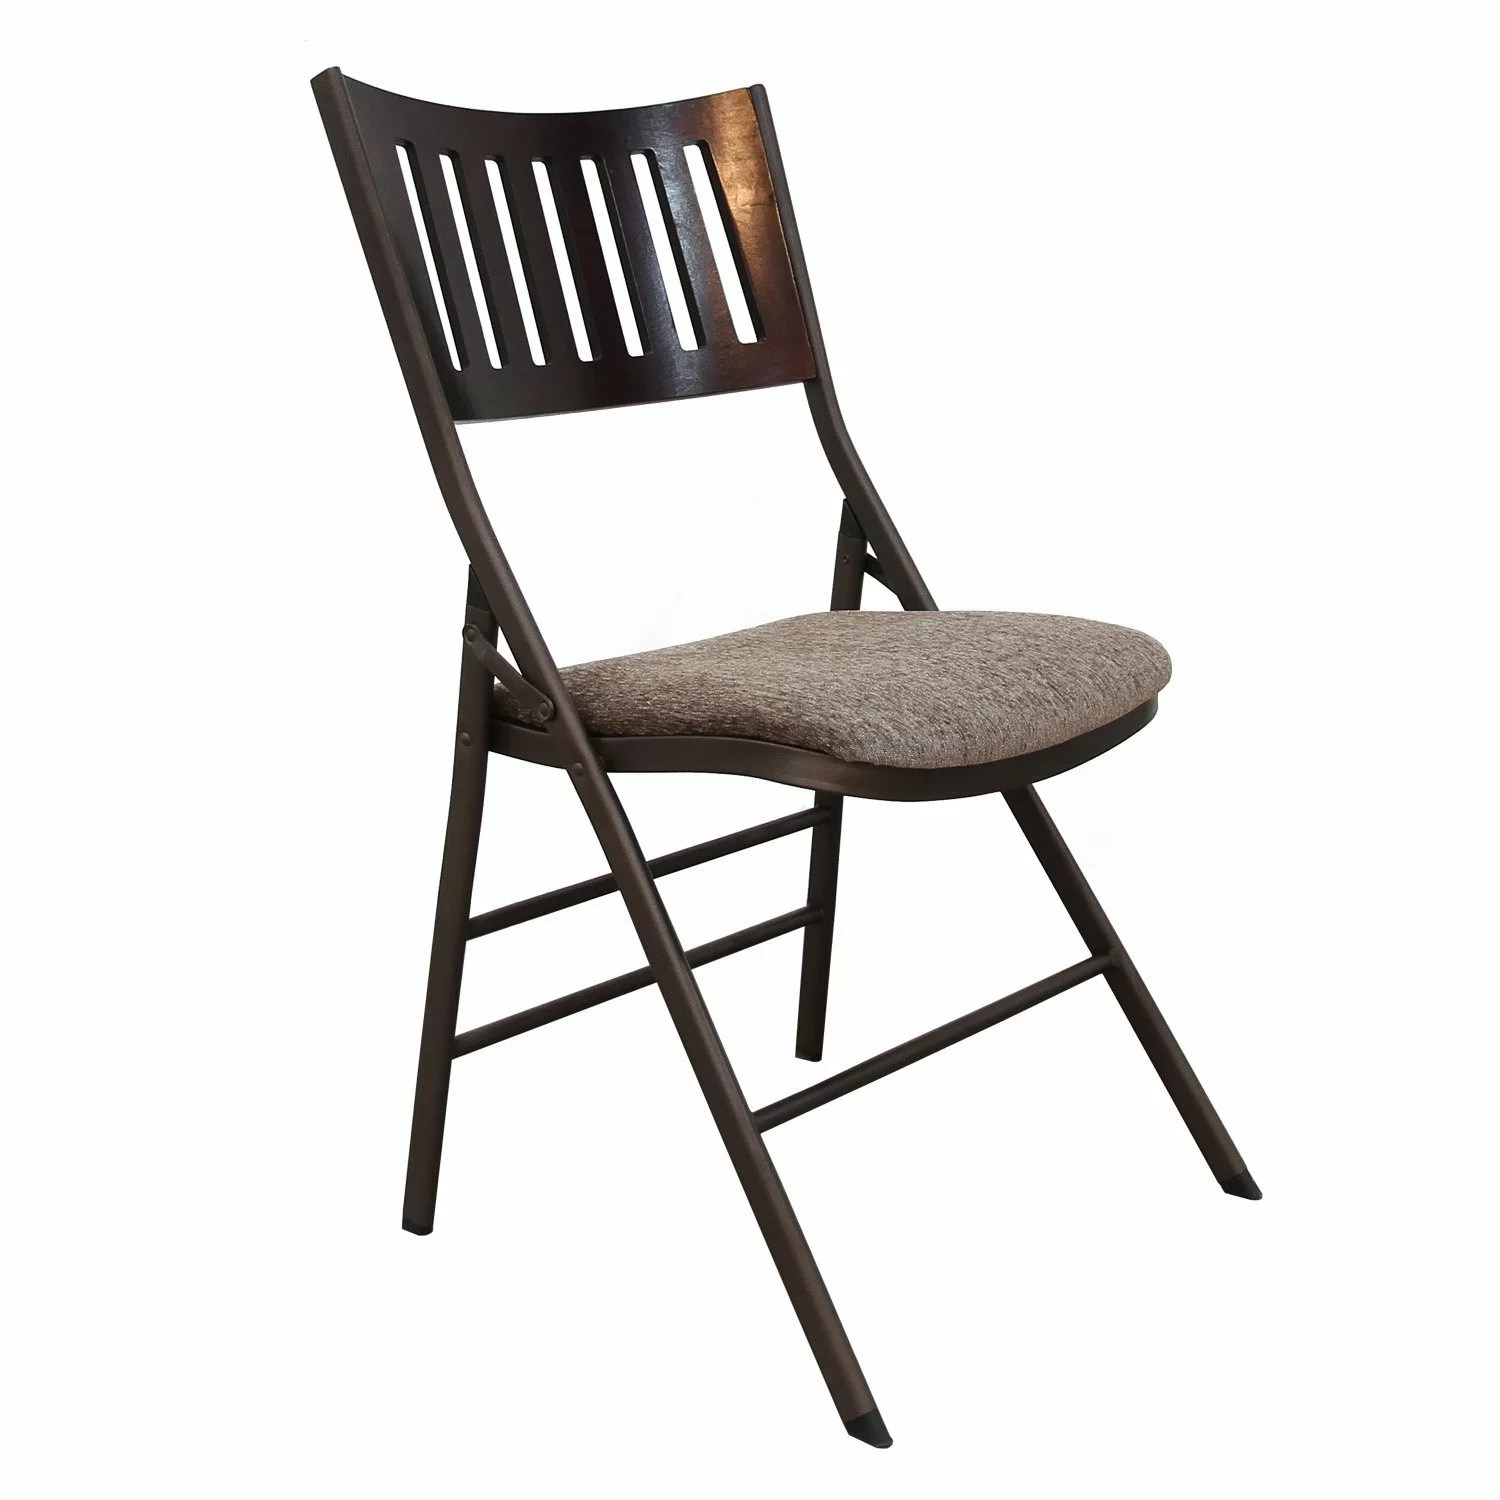 Steel Folding Chair Adecotrading Tubular Steel Folding Chair And Reviews Wayfair